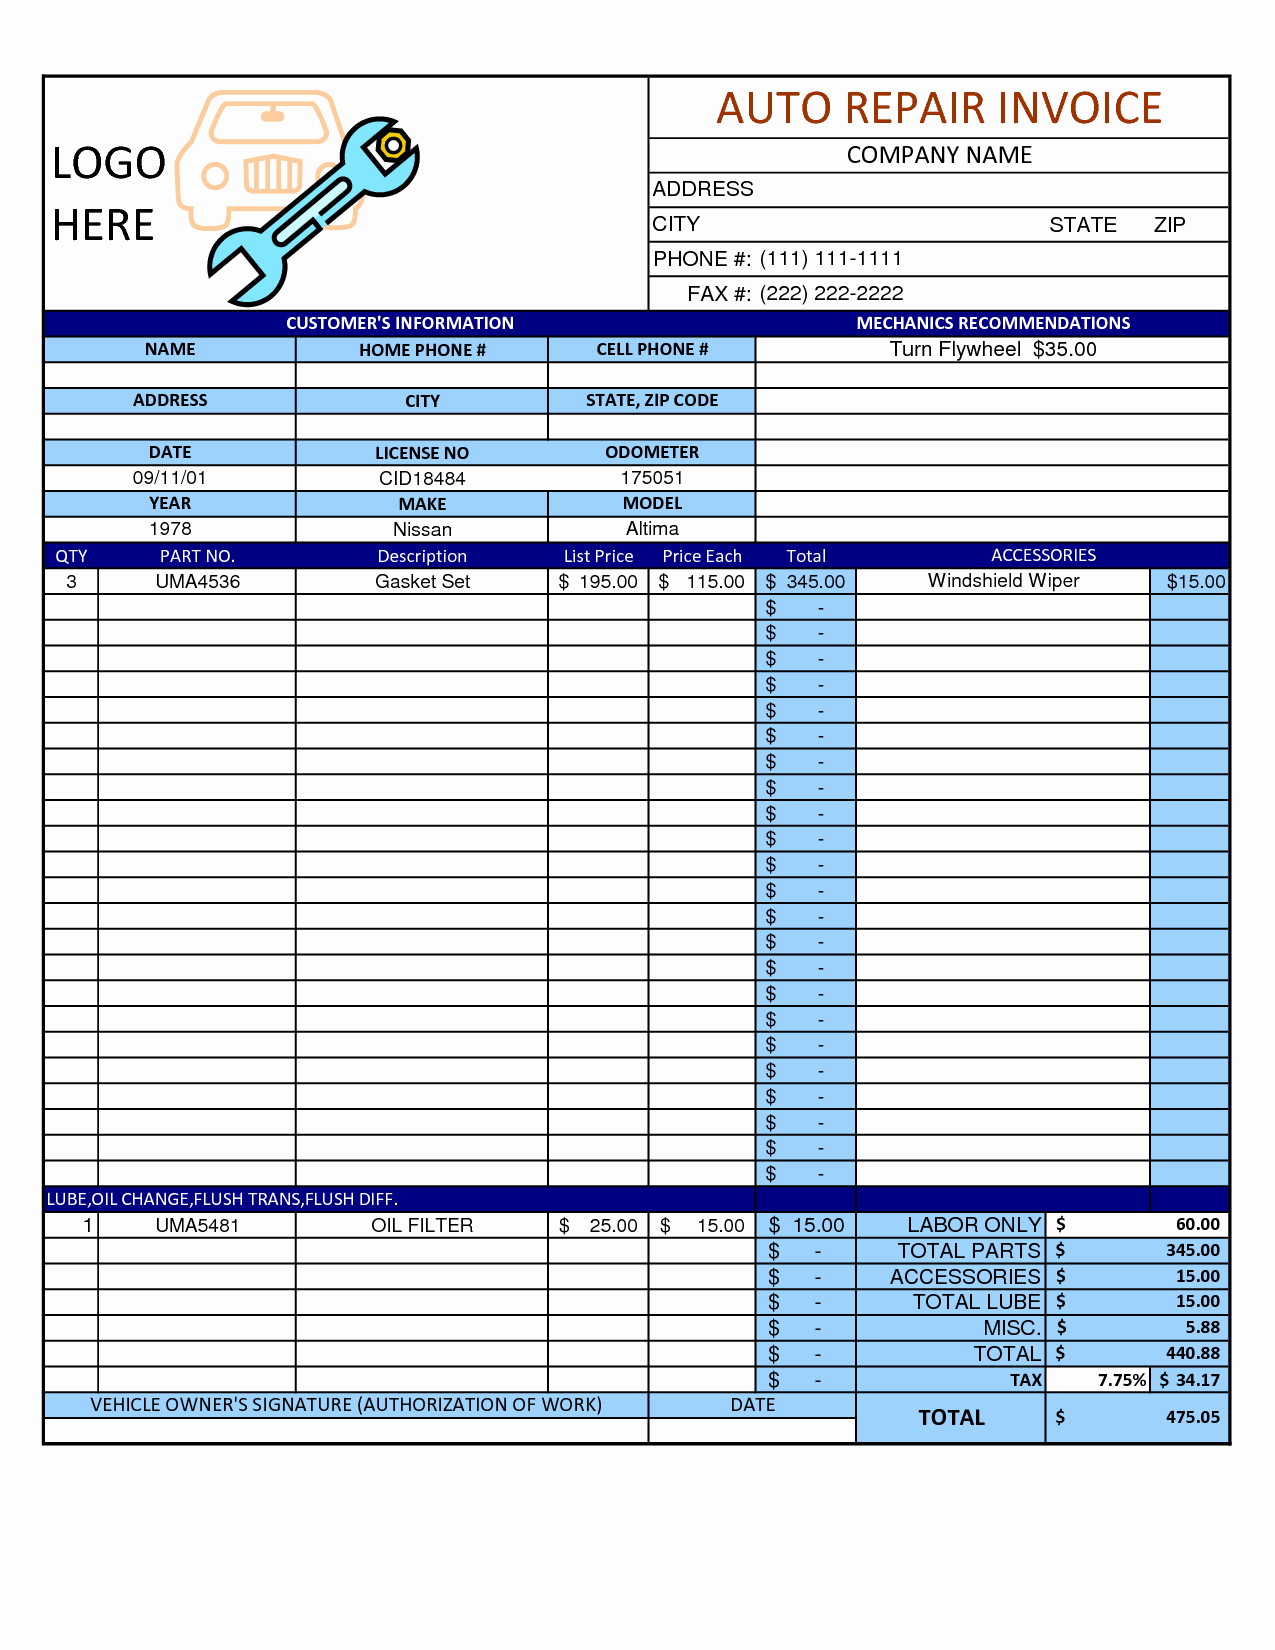 Auto Repair Invoice Template Word